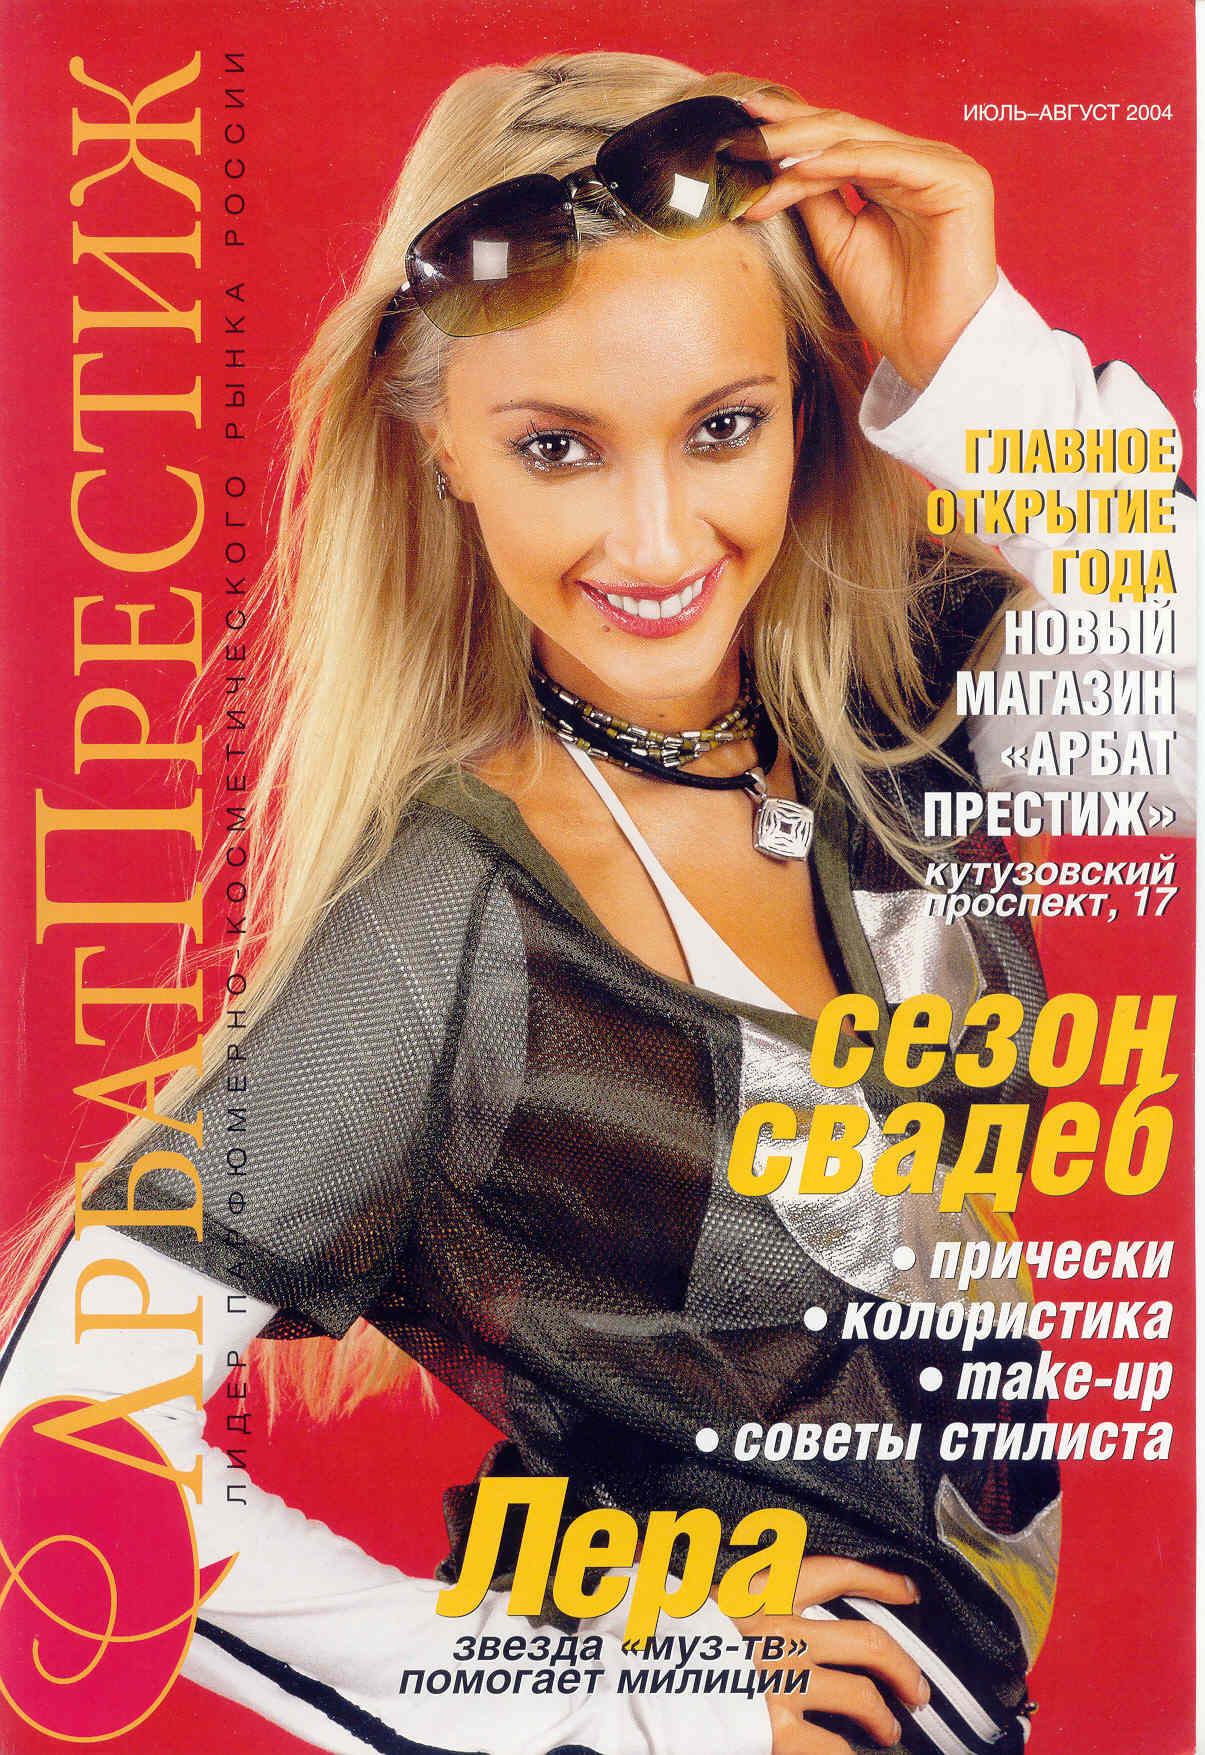 octobre 2004 - cover